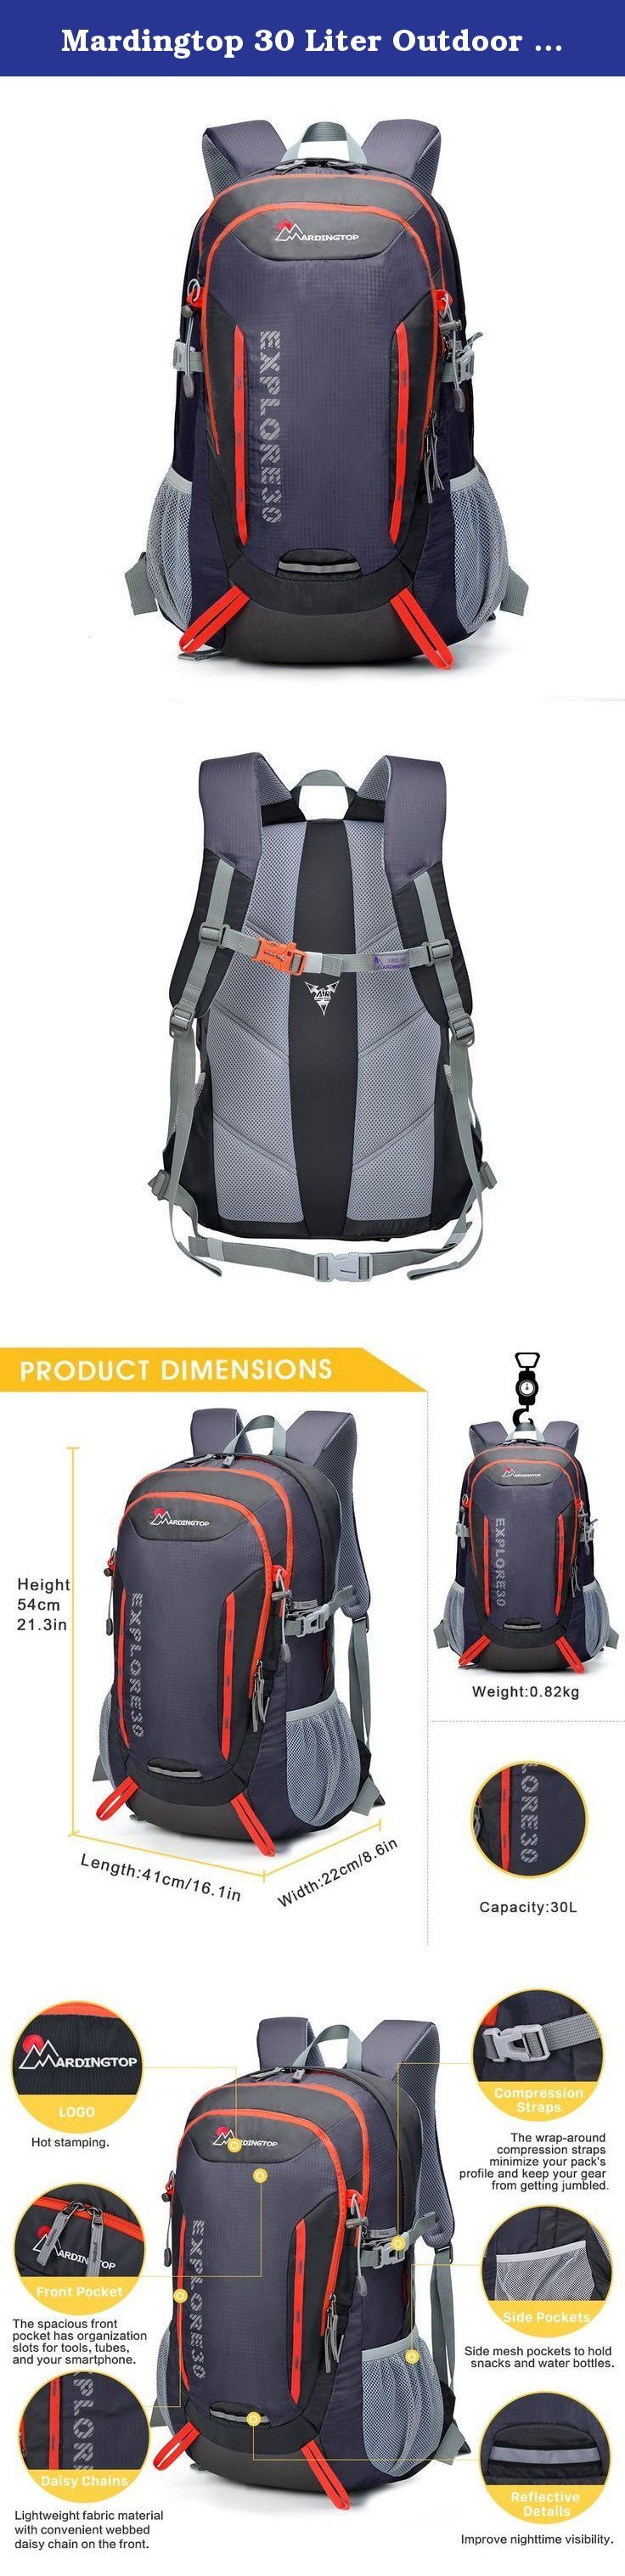 Mardingtop 30 Liter Outdoor Backpack-5943. Product Dimensions Height 54cm/21.3in Length 41cm/16.1in Width 22cm/8.6in Weight: 0.82kg / 1.8 lbs Capacity: 1.Daisy Chains:Lightweight fabric material with convenient webbed daisy chain on the front. 2.Side Pockets:Side mesh pockets to hold snacks and water bottles. 3.Sternum Strap:Adjustable sternum strap to balance your shoulder straps. 4.Whistle Buckle:Emergency whistle buckle higher safety factor. 5.Bartack Technology:Stitched with bartack...